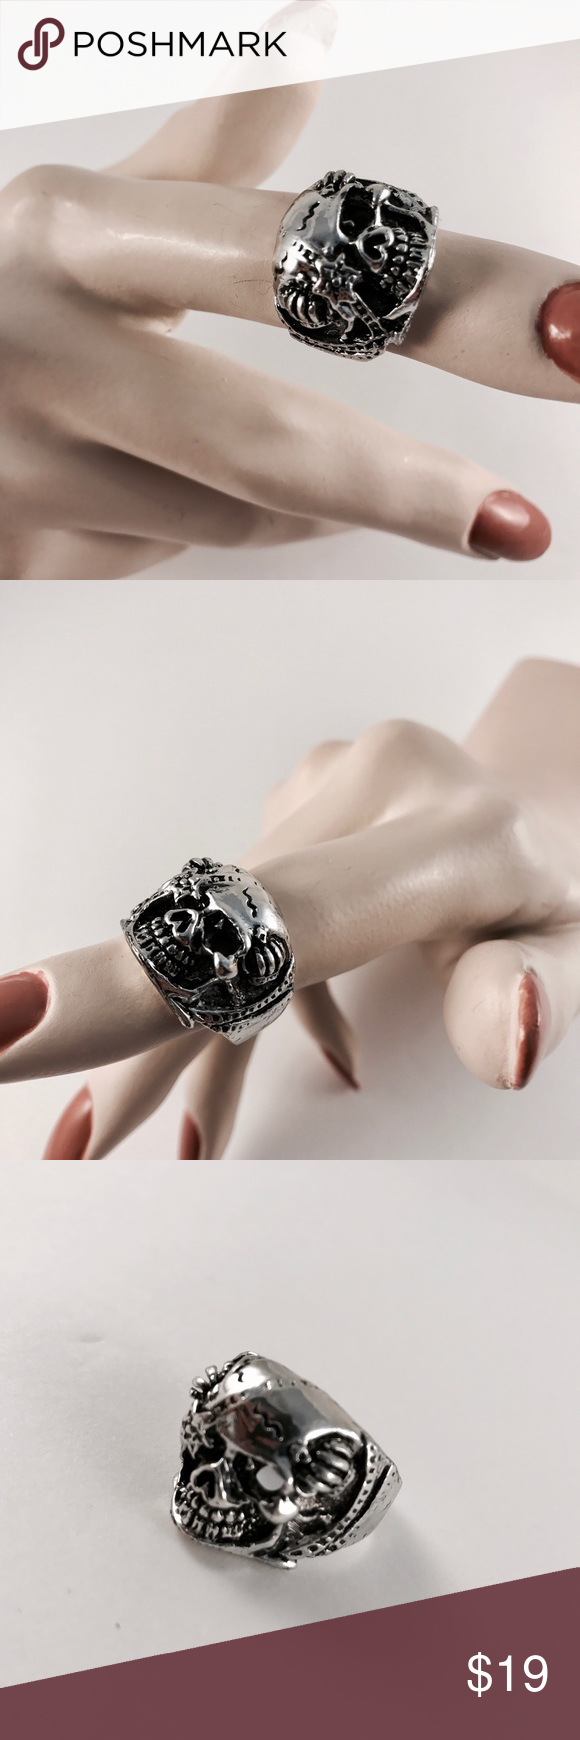 Vintage ring Vintage silver skull ring in approx. size 8 Jewelry Rings